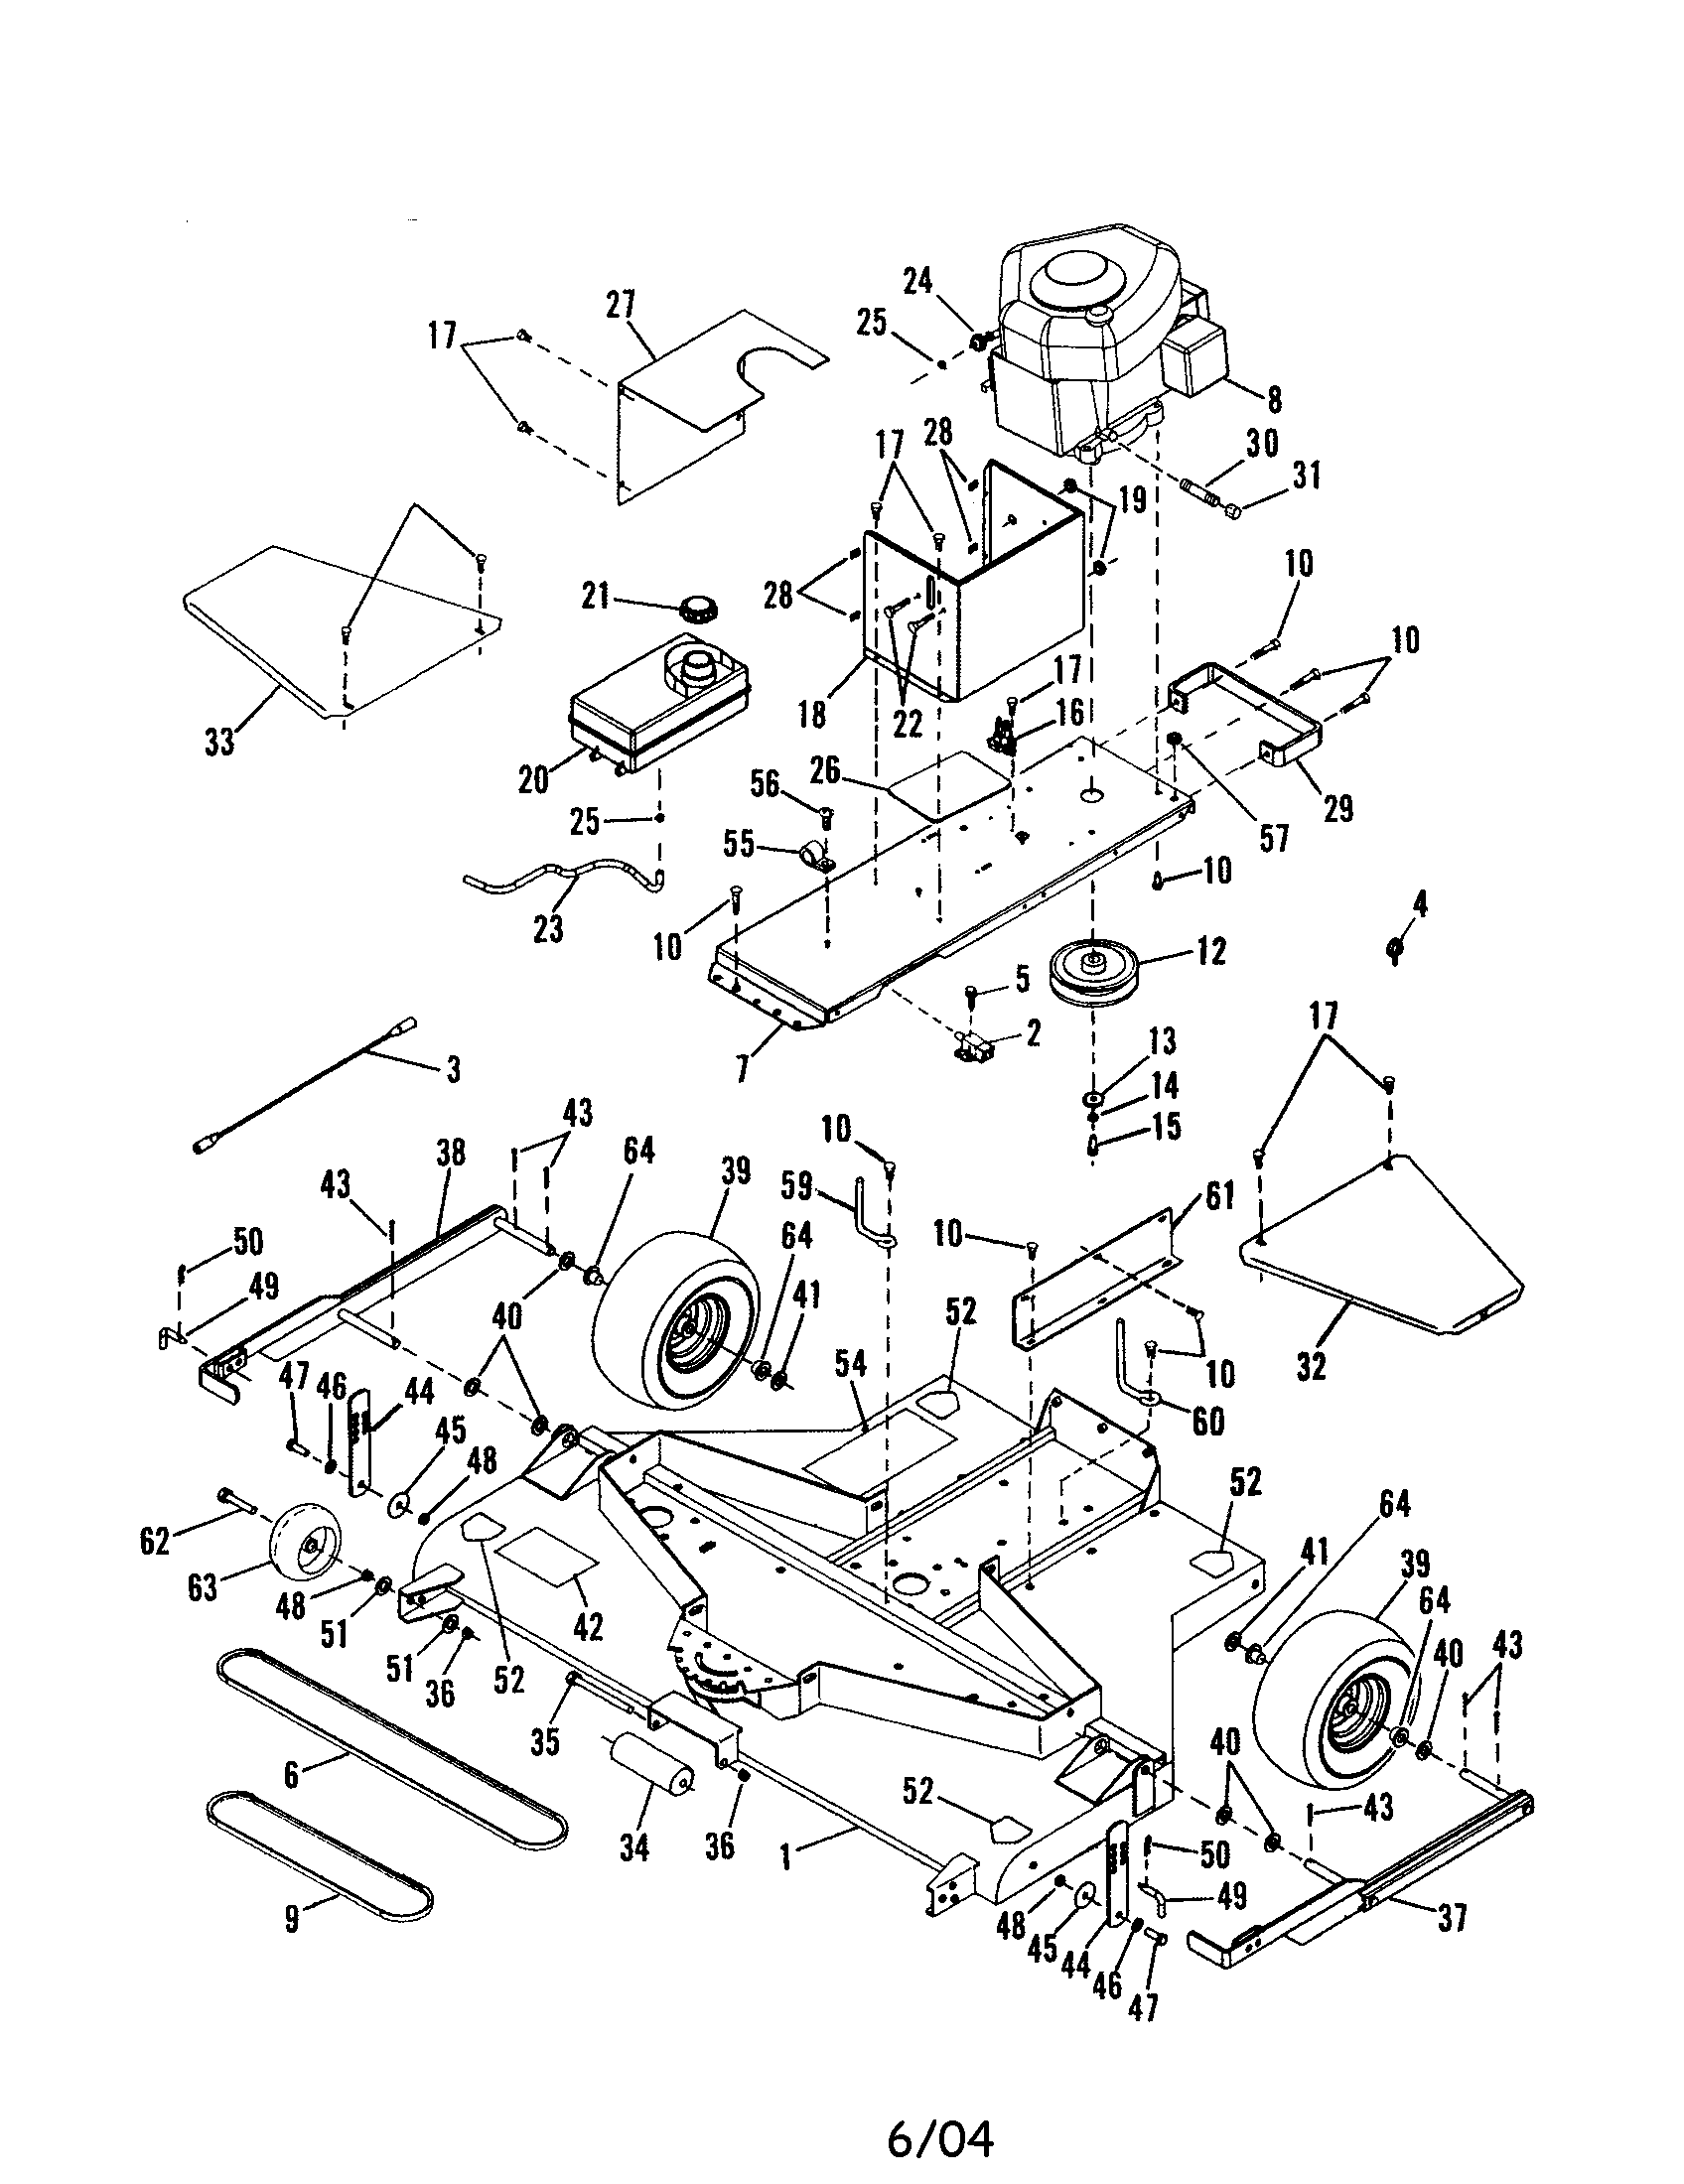 Wiring Diagram For Swisher Pull Mower Ignition System